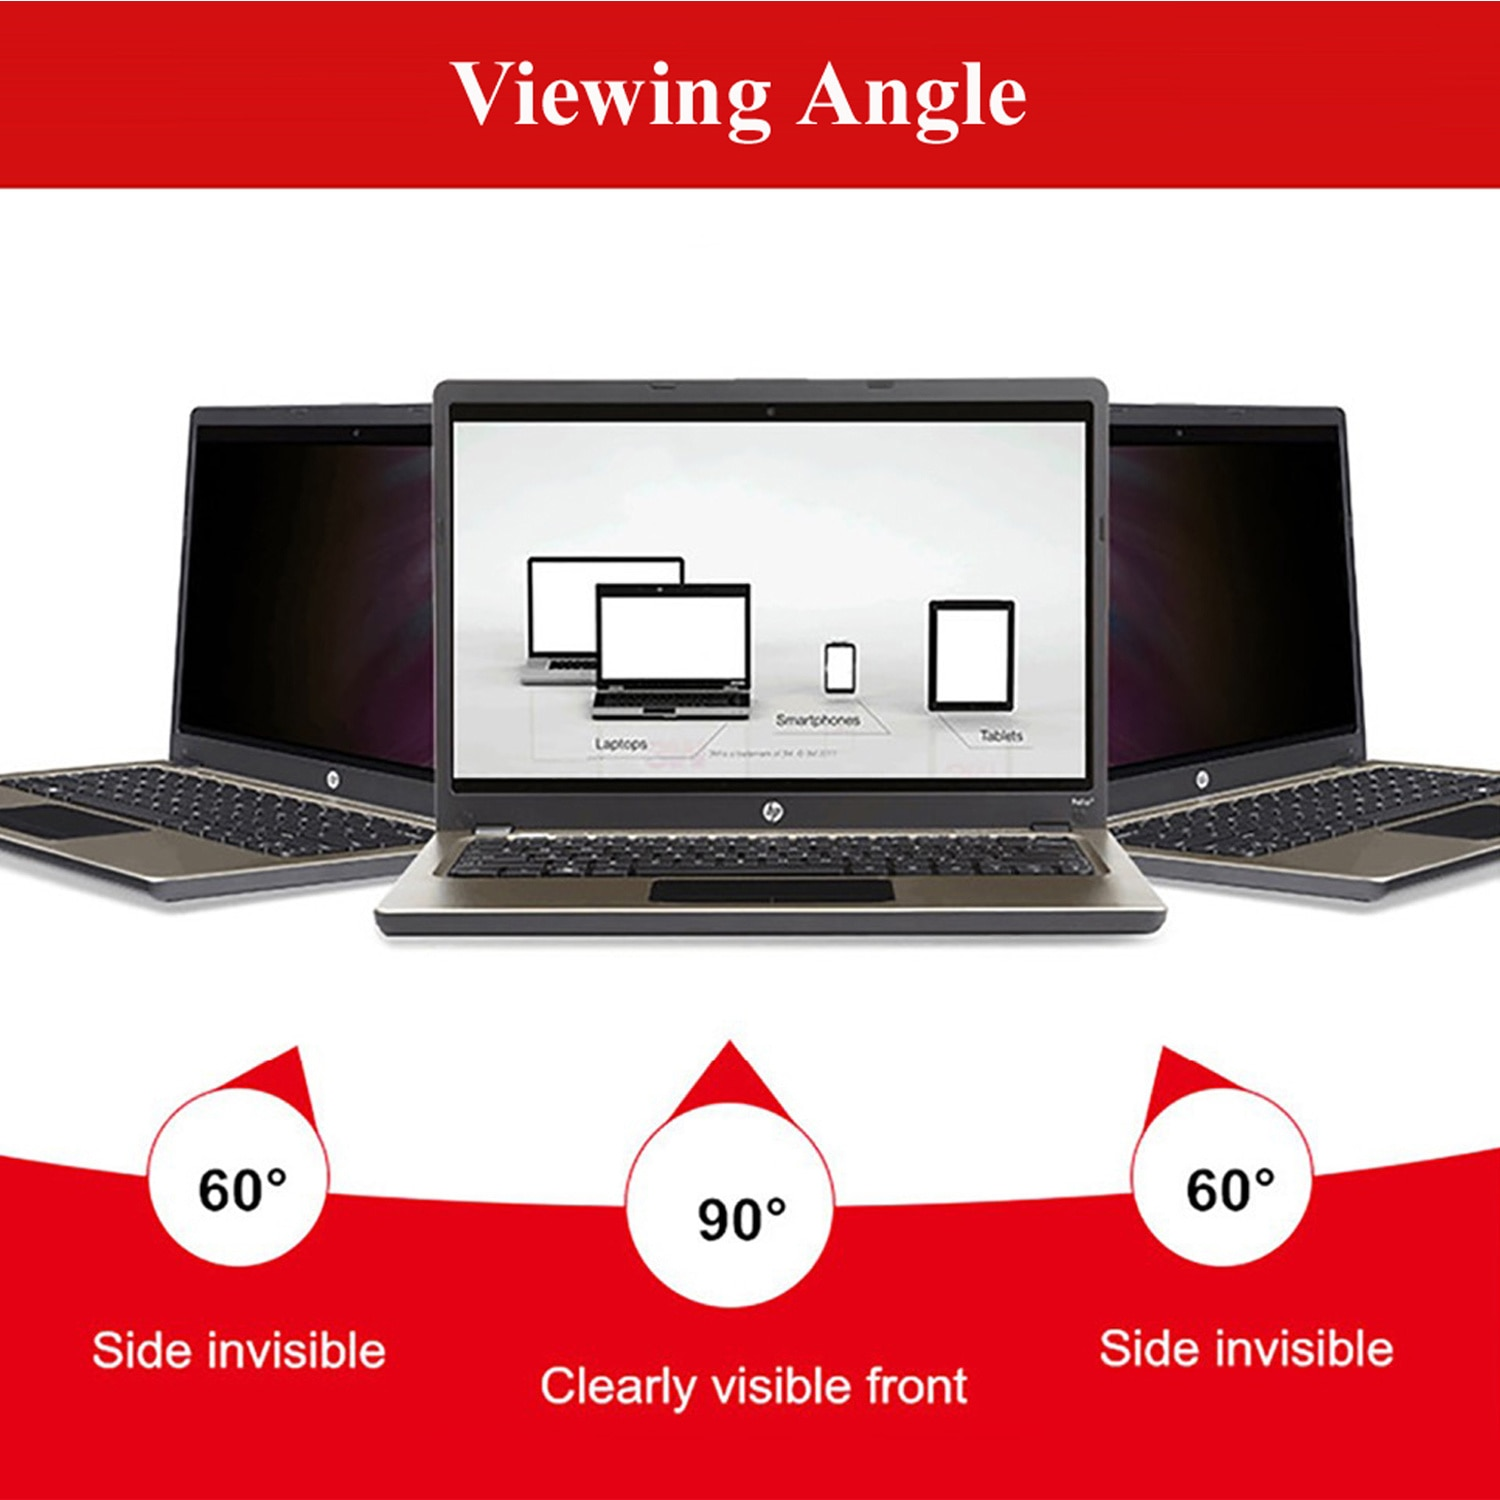 14 inch Laptop Privacy Filter Screen Protector Film for Computer Monitor Widescreen 16:9 Aspect Ratio enlarge